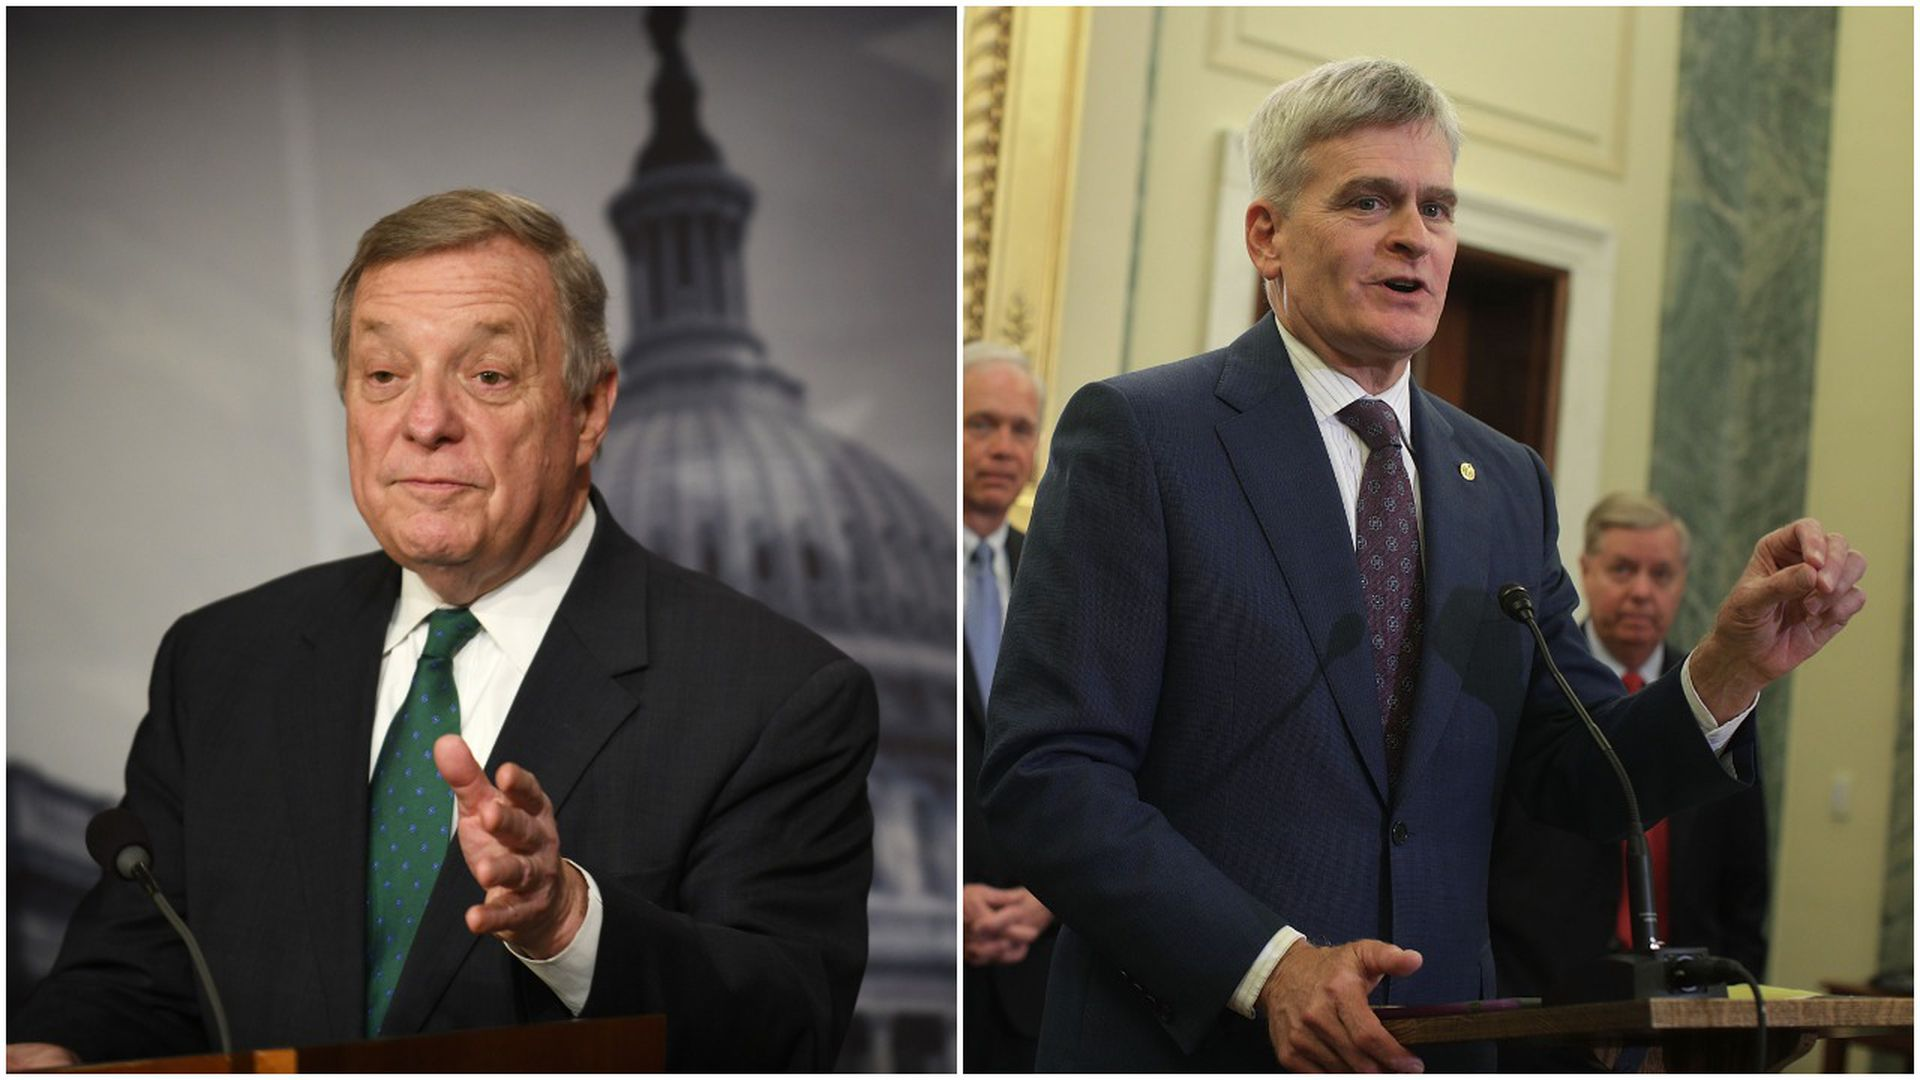 This image is a split scree between Sen. Cassidy and Sen. Durbin, who are both standing in suits and talking with one hand raised.